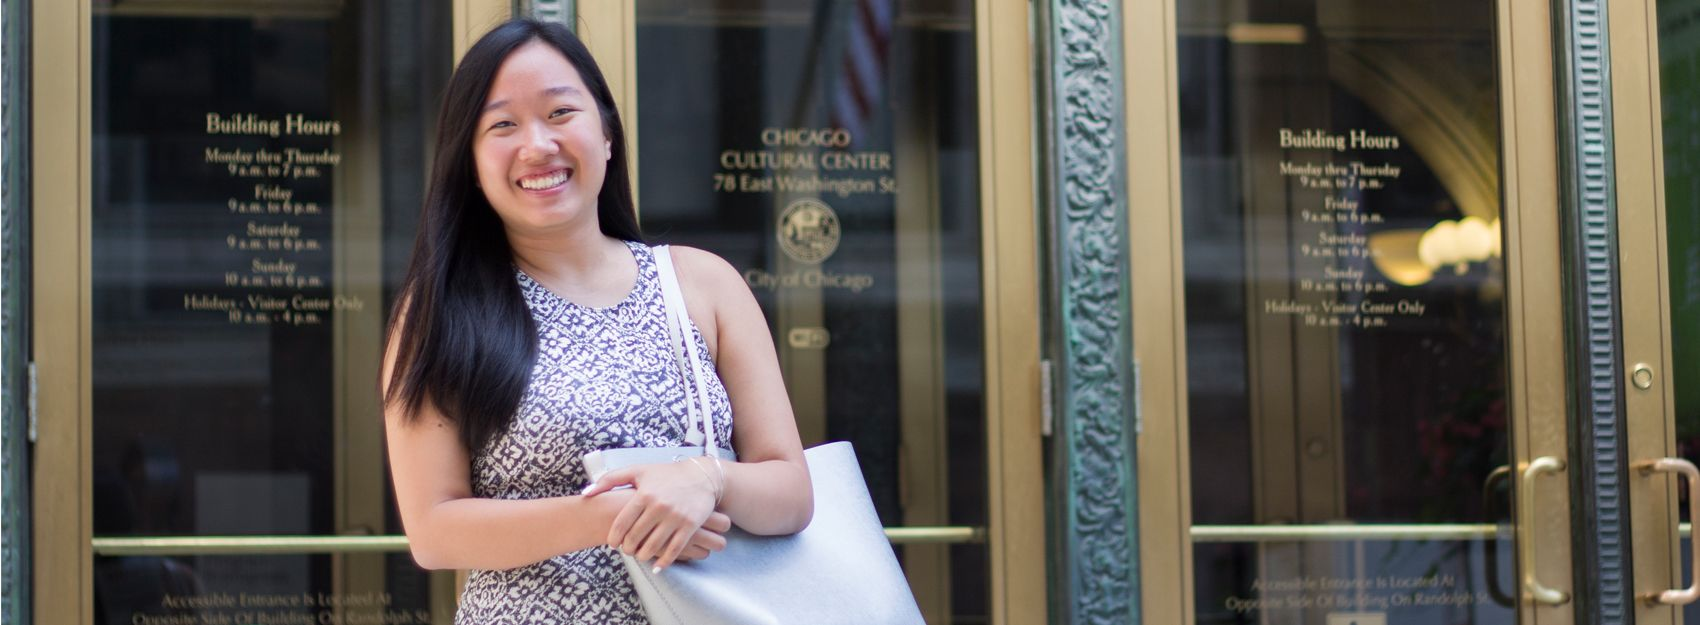 Summer intern in Chicago in front of Cultural Center